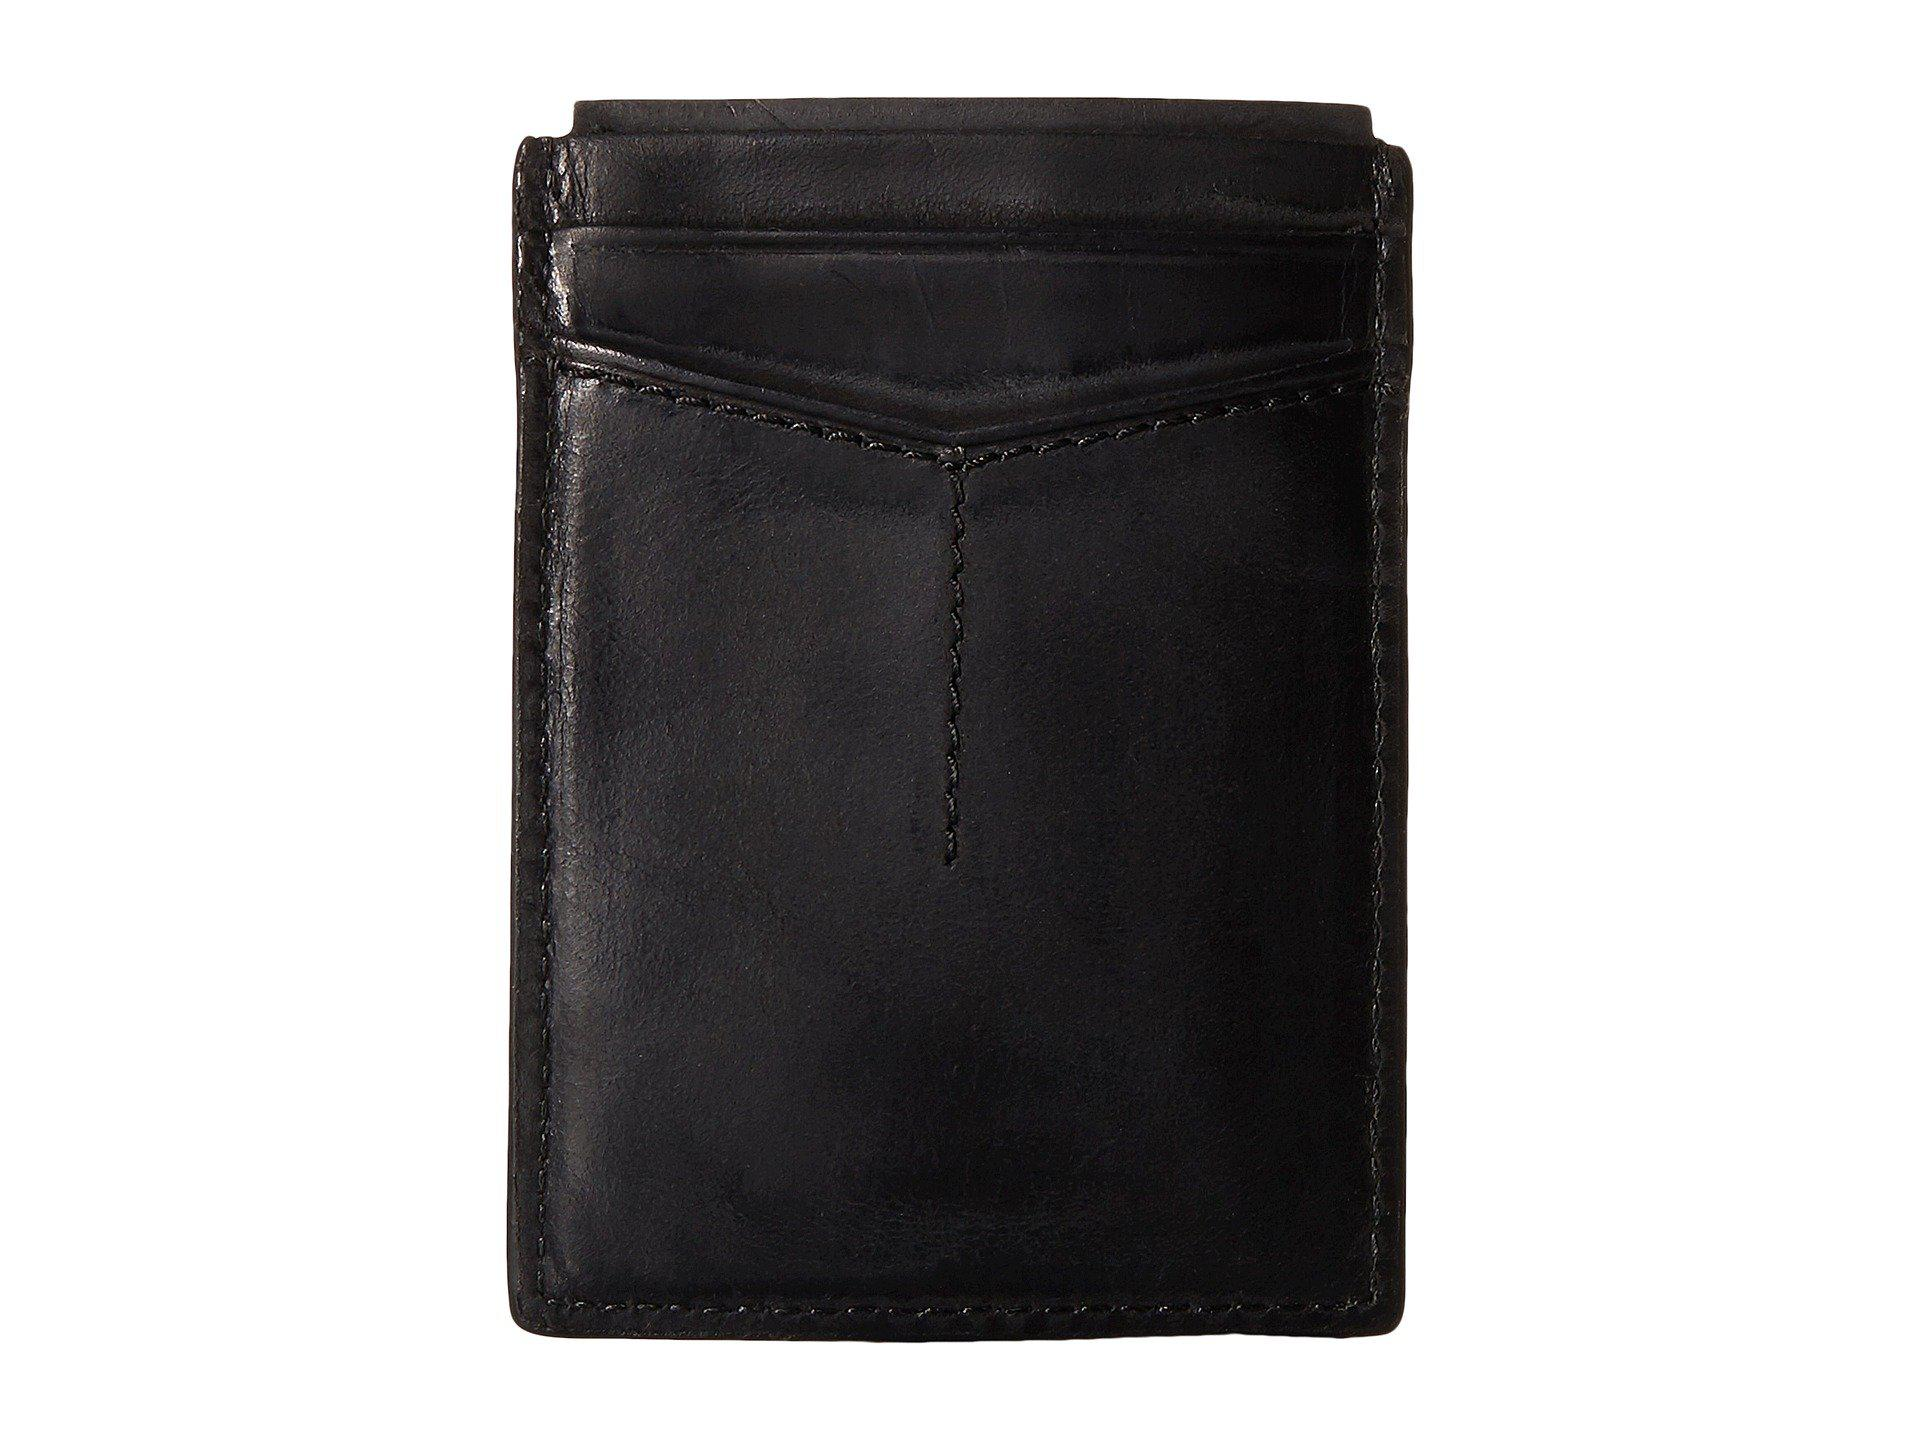 Lyst - Fossil Quinn Magnetic Card Case in Black